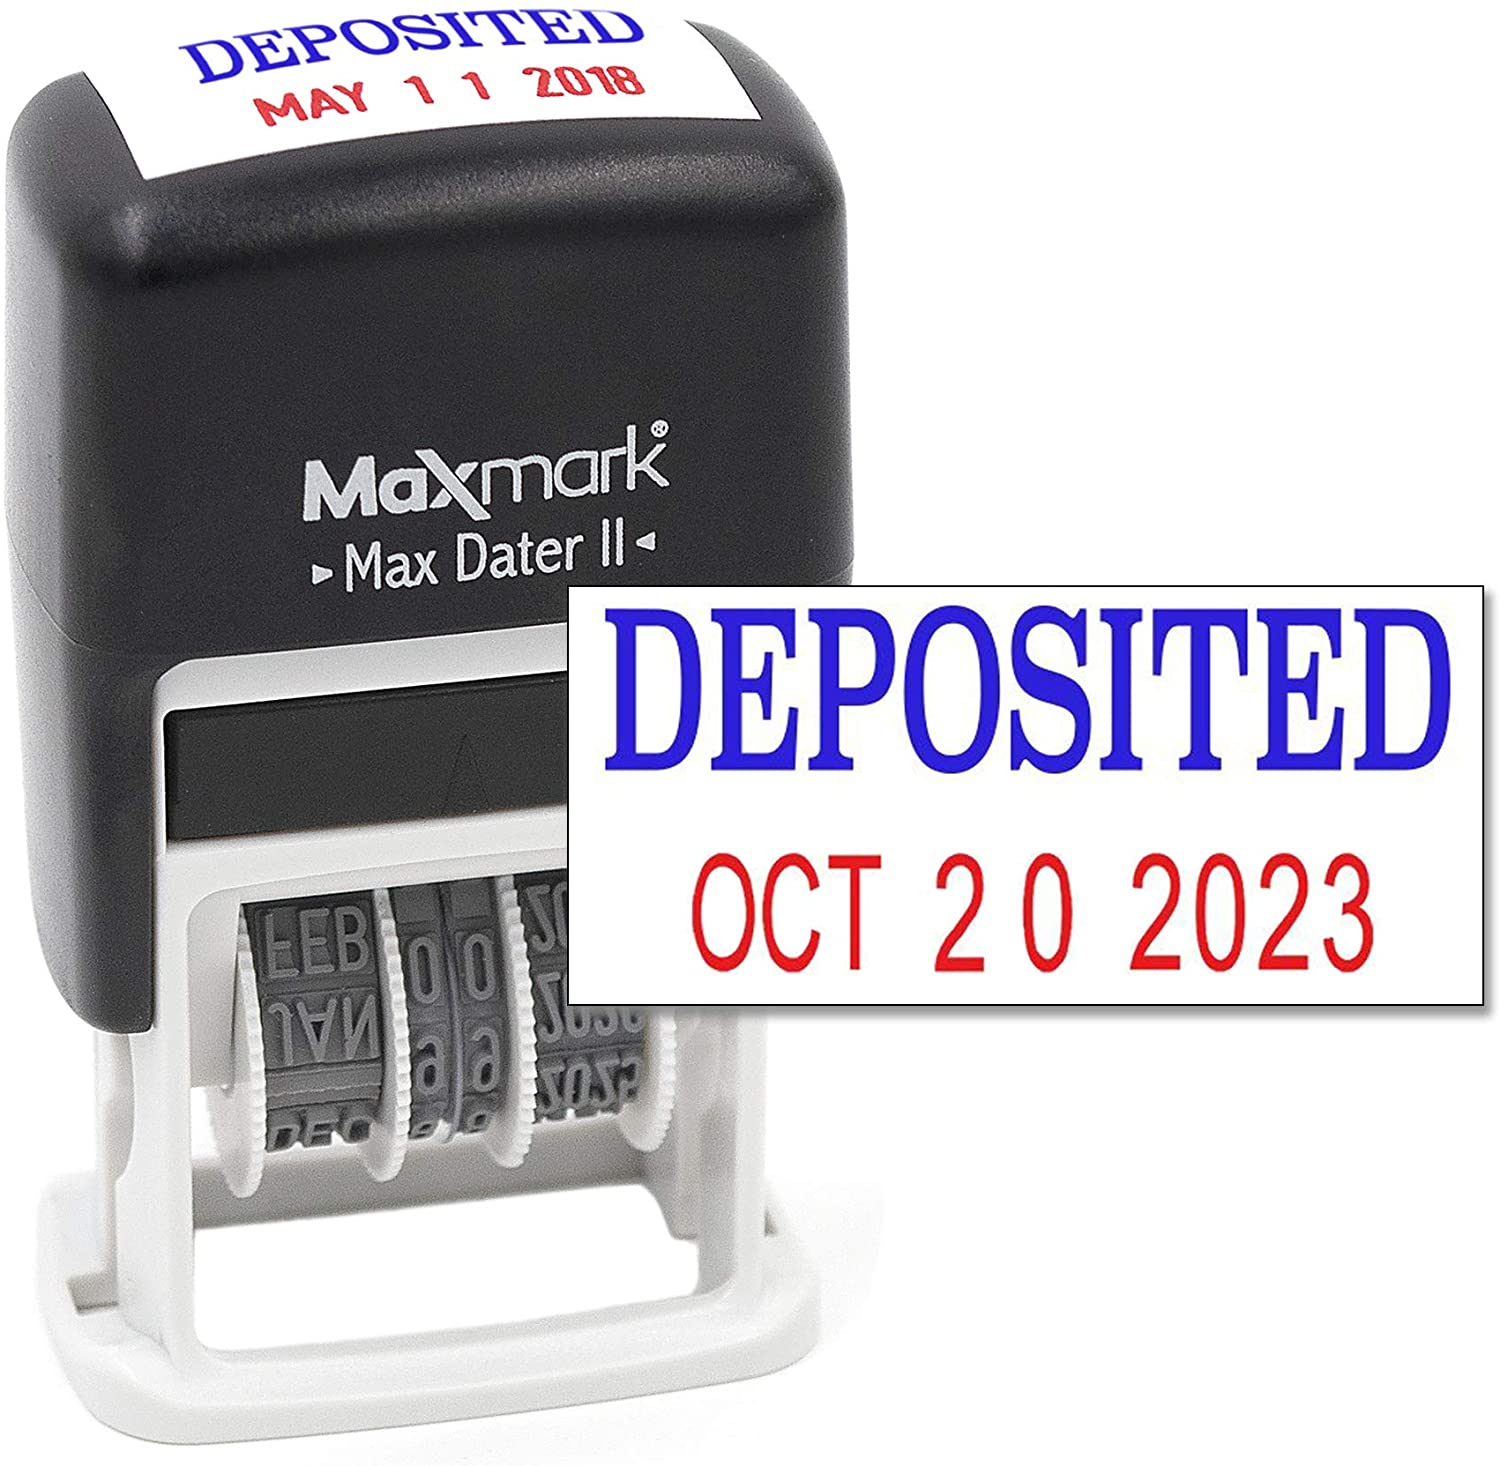 MaxMark Self-Inking Rubber Date Office Stamp with DEPOSITED Phrase Blue Ink & Date RED Ink (Max Dater II), 12-Year Band